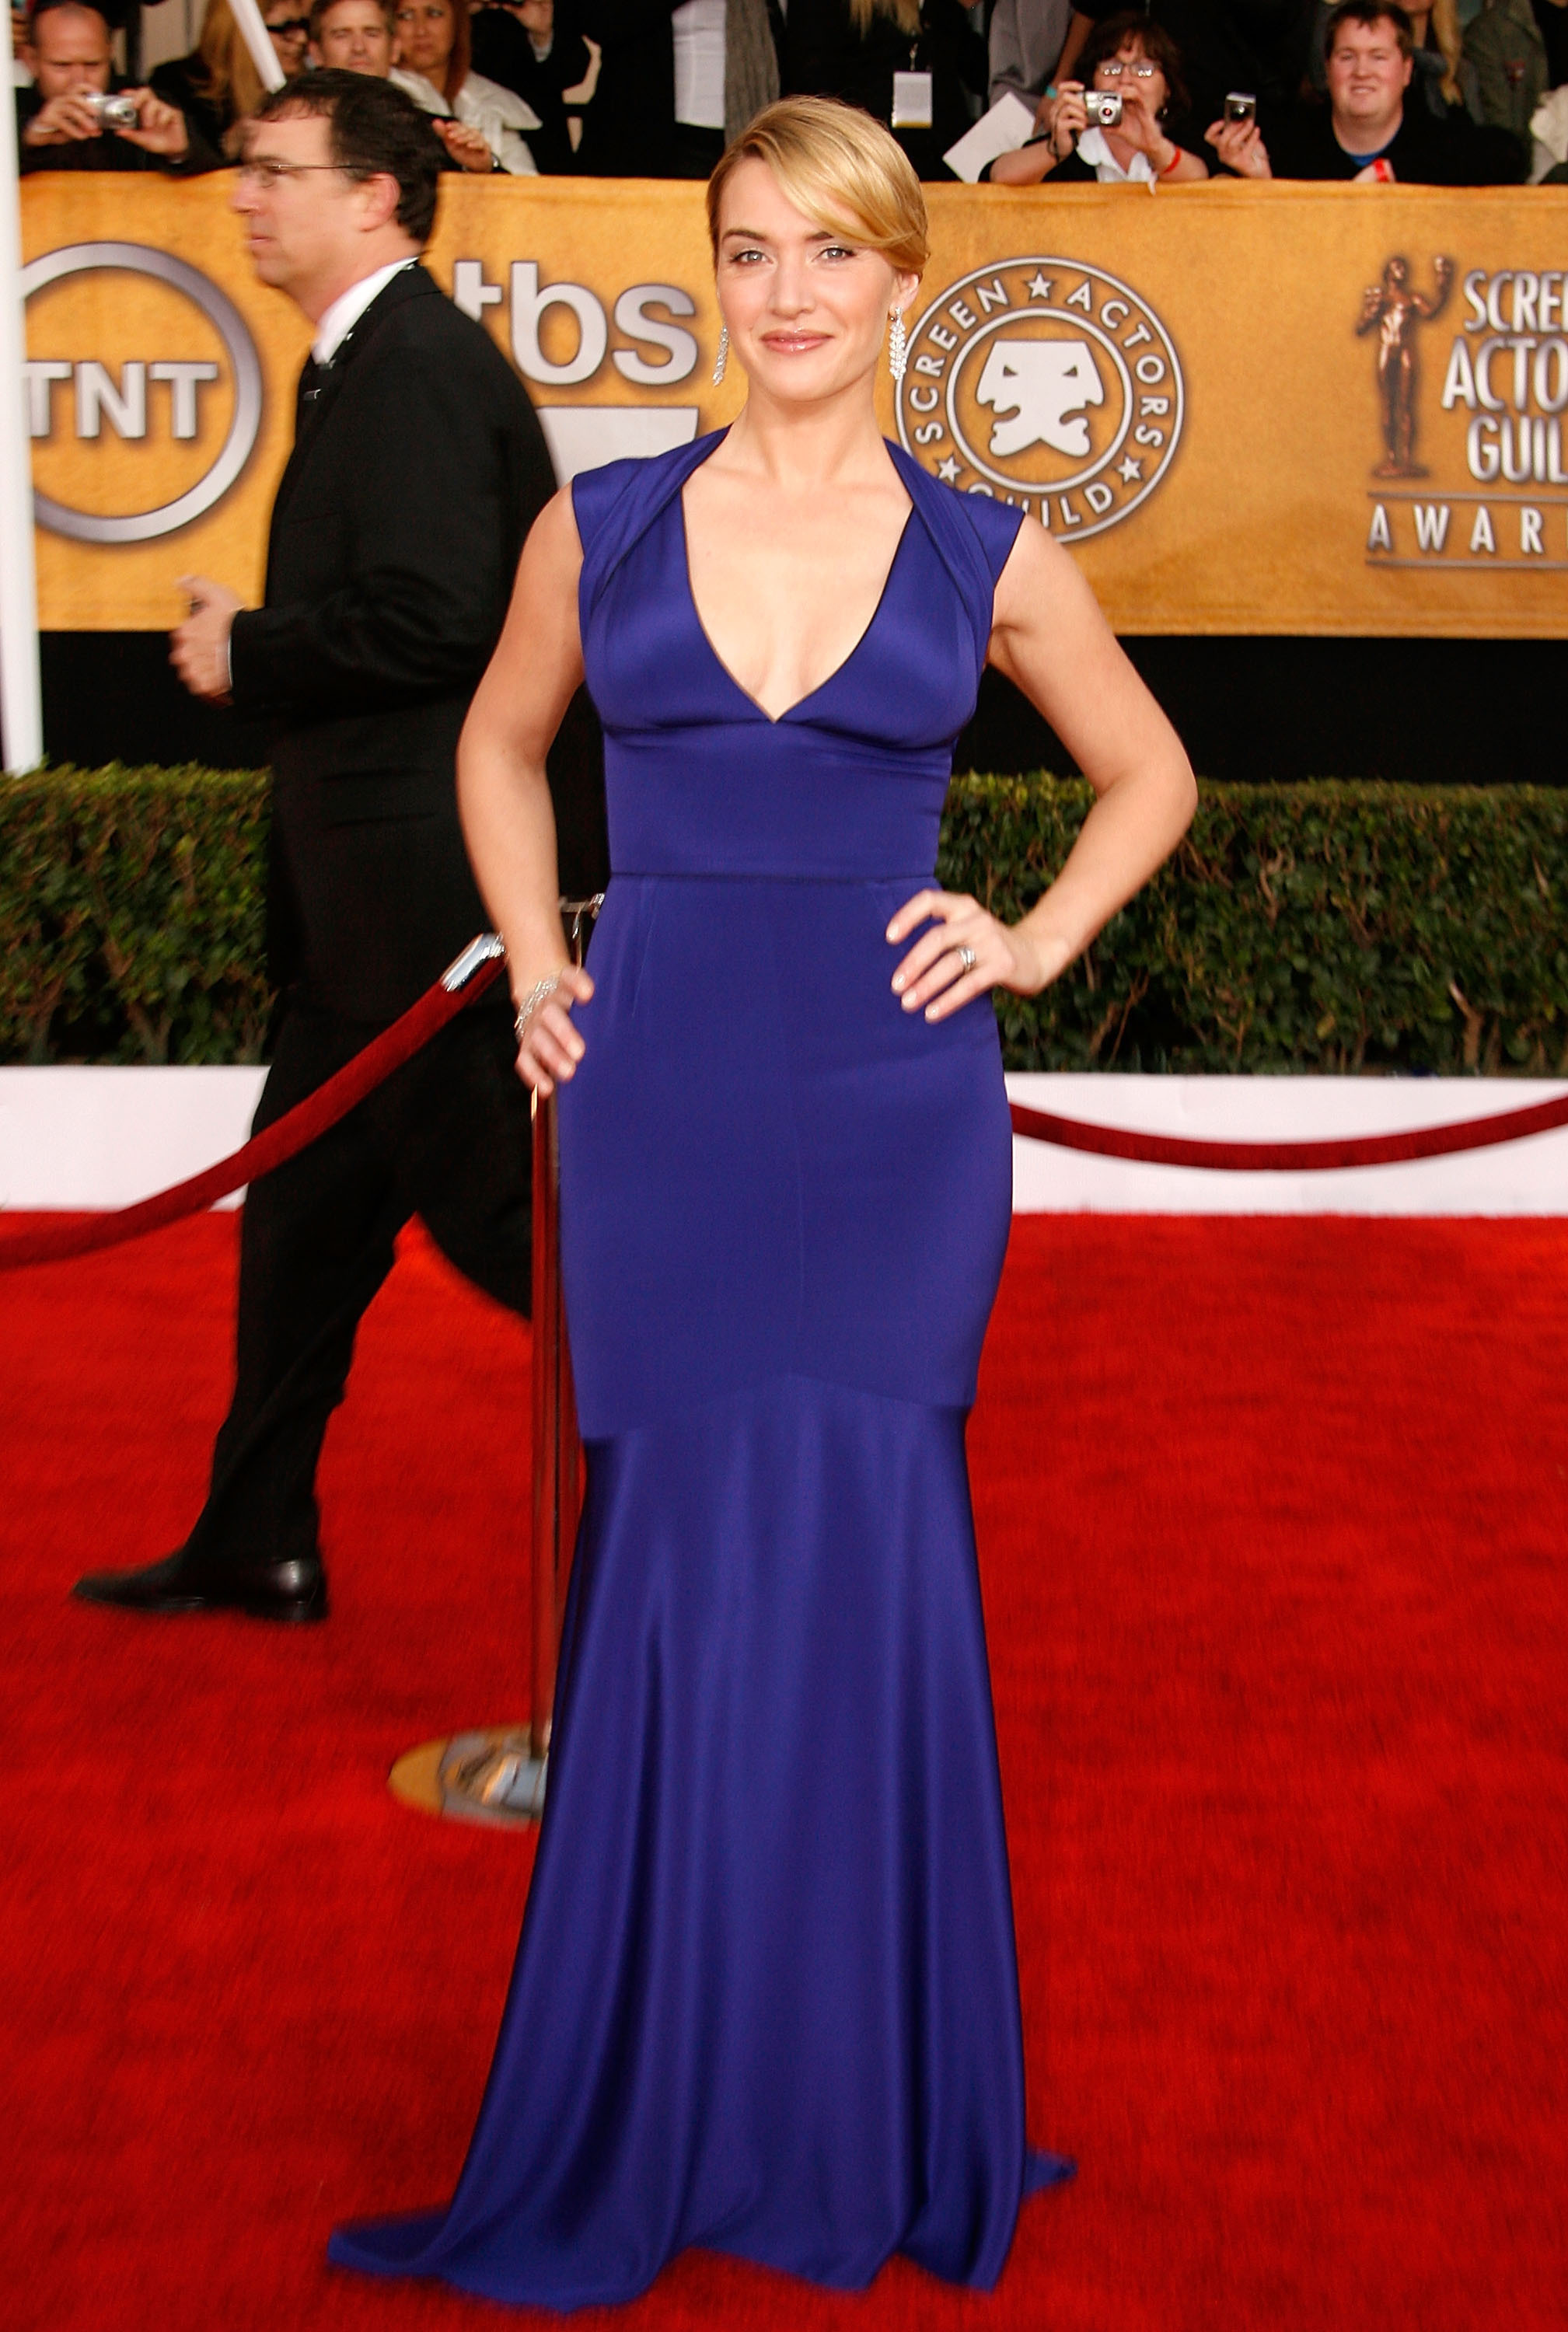 color dresses Gwyneth Paltrow Kate Winslet